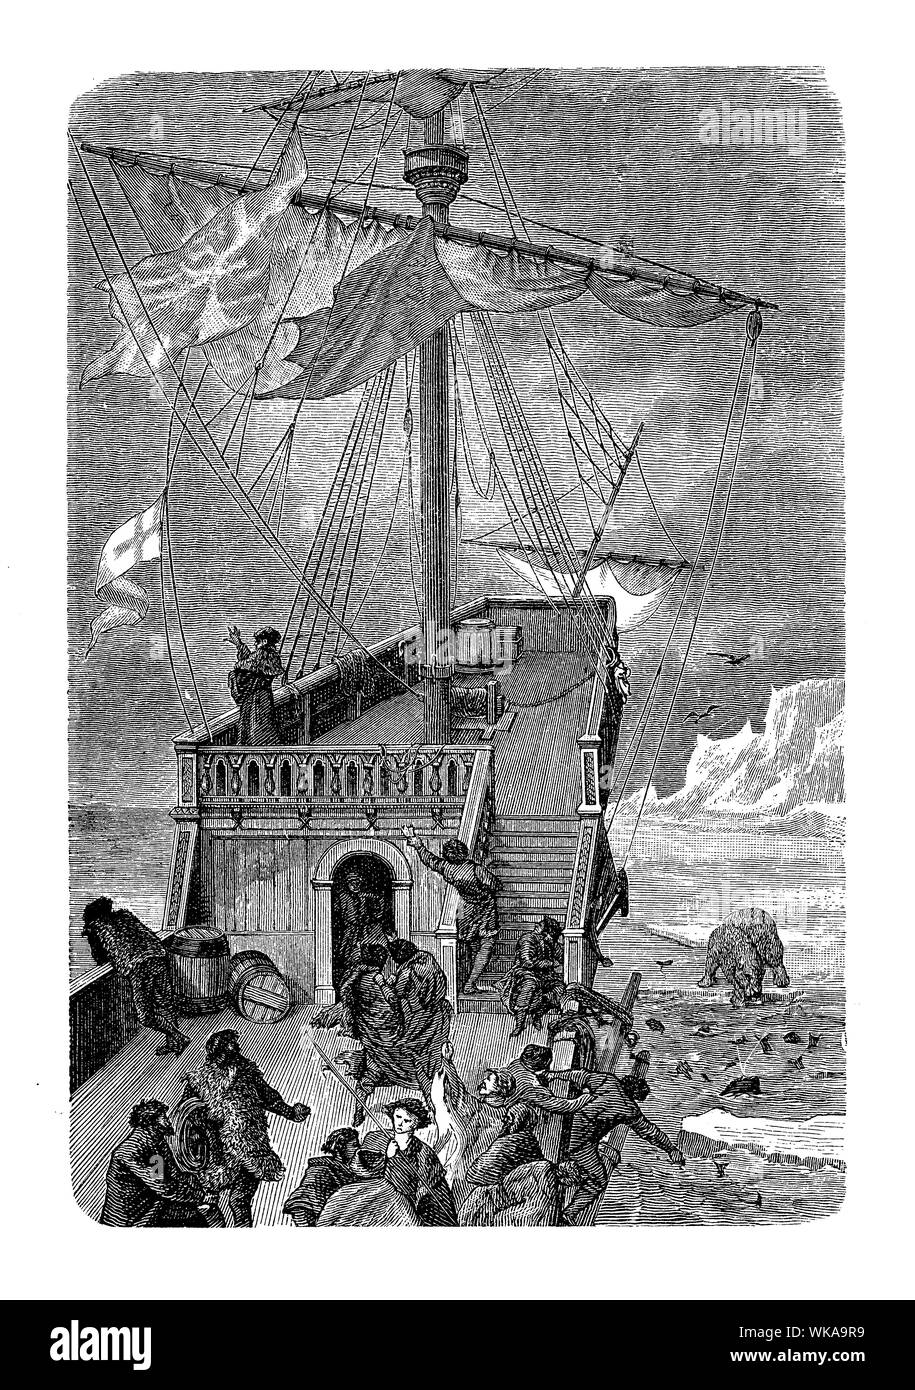 Sebastian Cabot ship leaves the Labrador coast in 15th century during a voyage of exploration of North America seeking the Northwest Passage Stock Photo